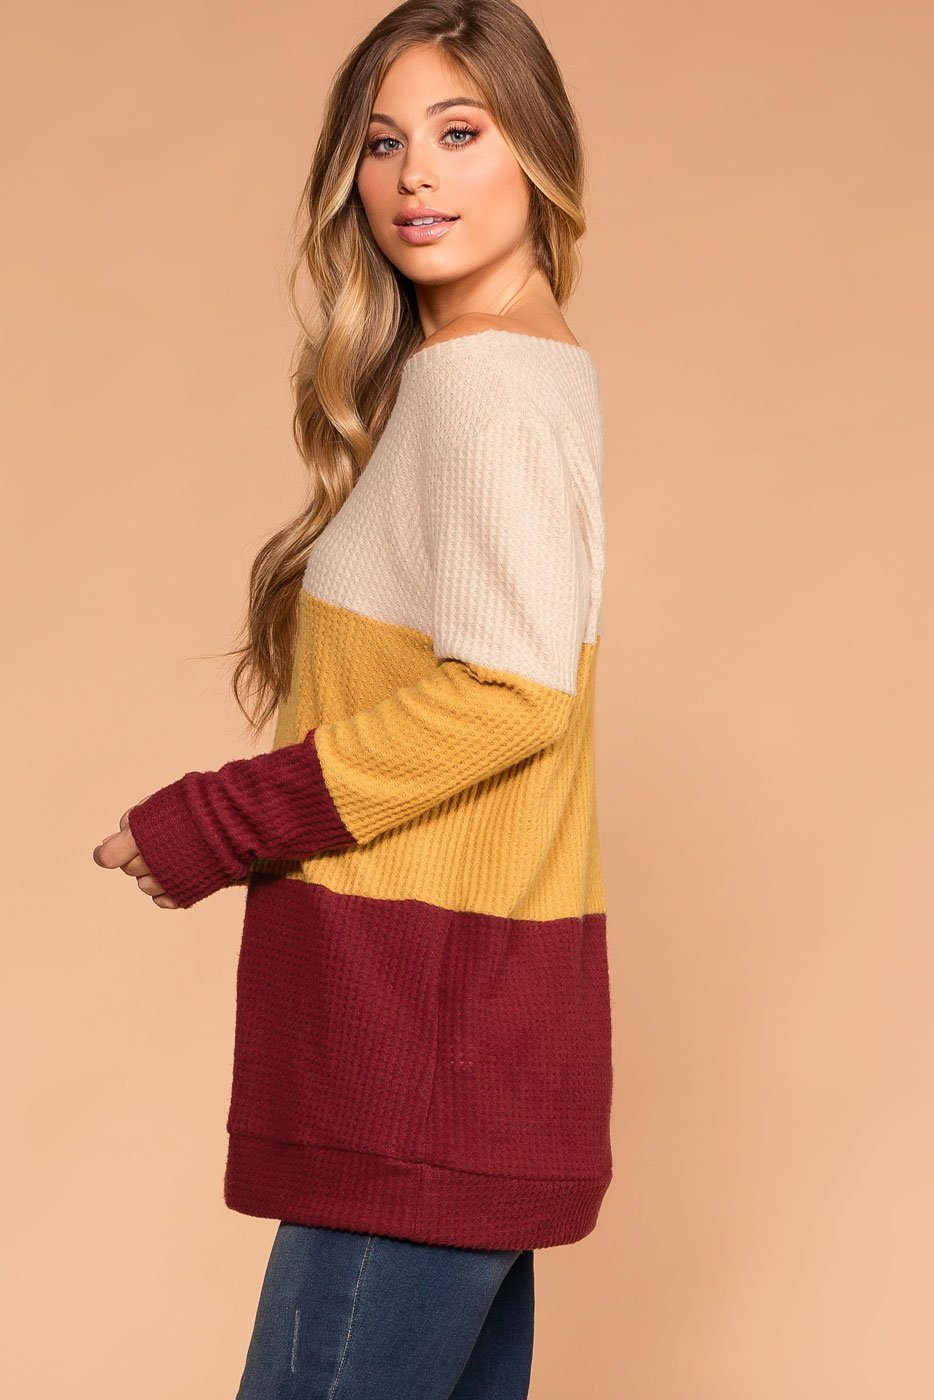 Pumpkin Cider Burgundy Thermal Sweater Top